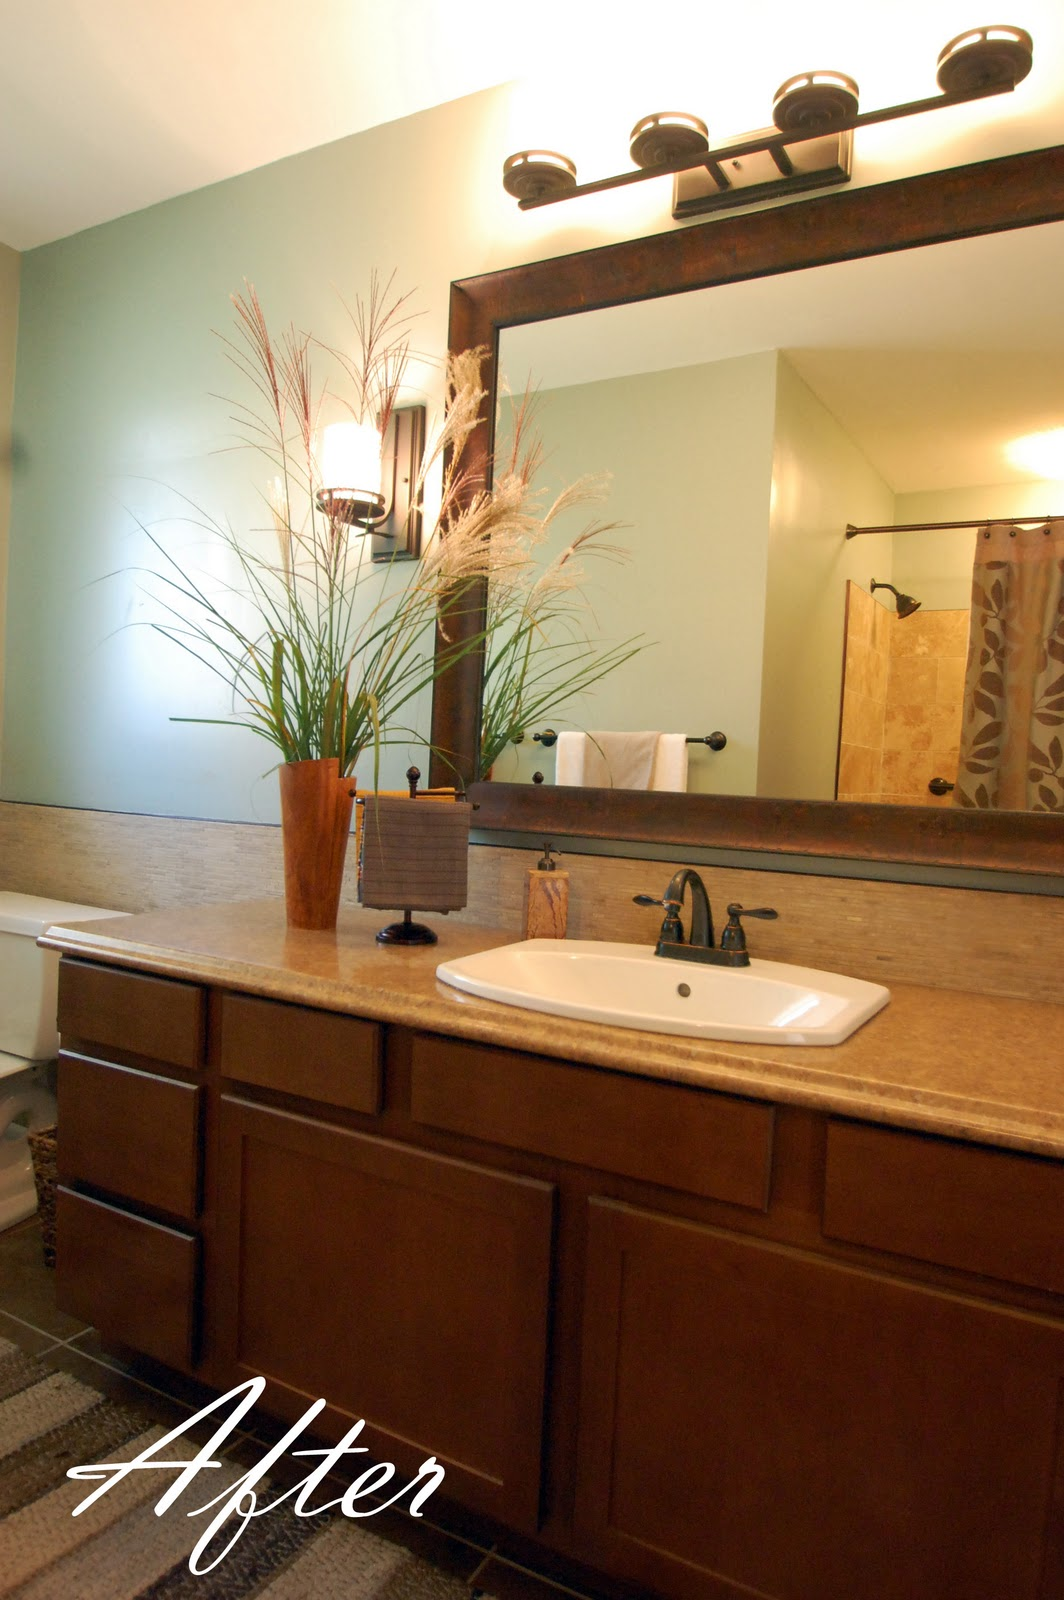 Happyroost Interiors: Bathroom Renovation: Before and After